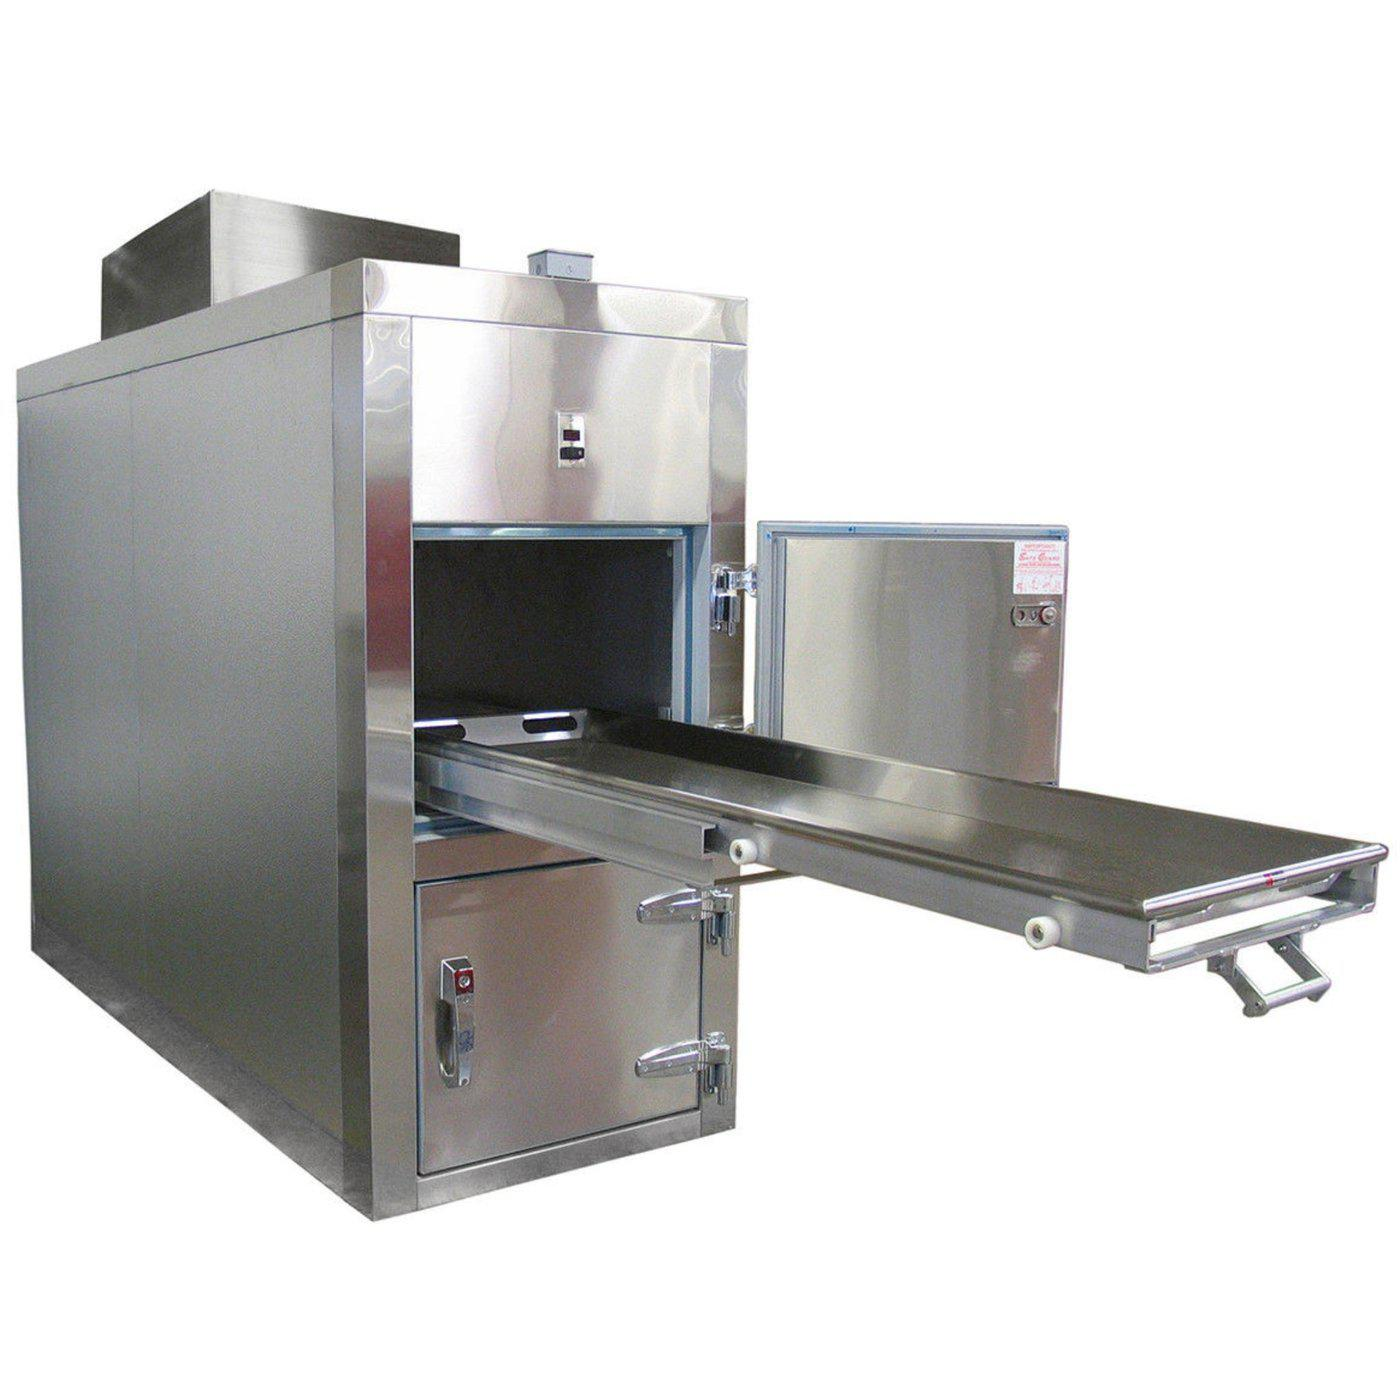 Two Body Refrigerator-Refrigeration-Mortech Manufacturing Company Inc. Quality Stainless Steel Autopsy, Morgue, Funeral Home, Necropsy, Veterinary / Anatomy, Dissection Equipment and Accessories